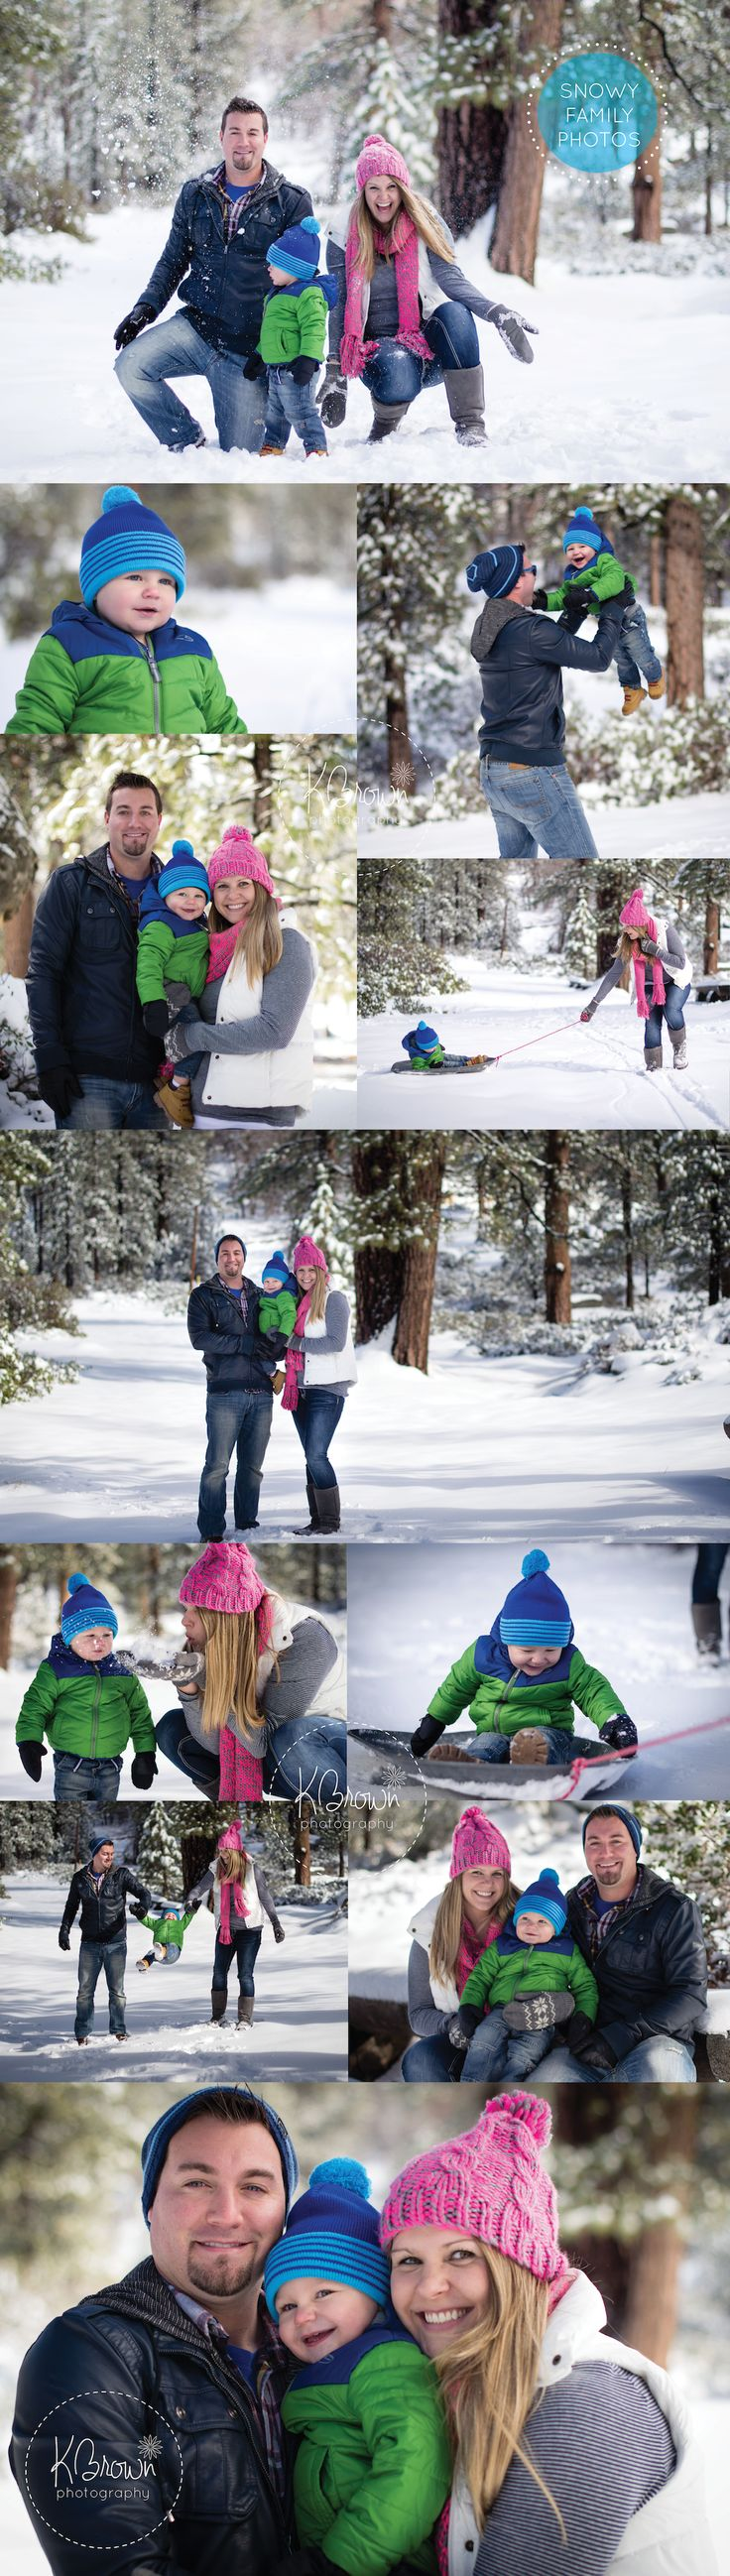 Snowy Family Photos - KBrown Photography | Christmas card photos | Snow family photos | #Photography